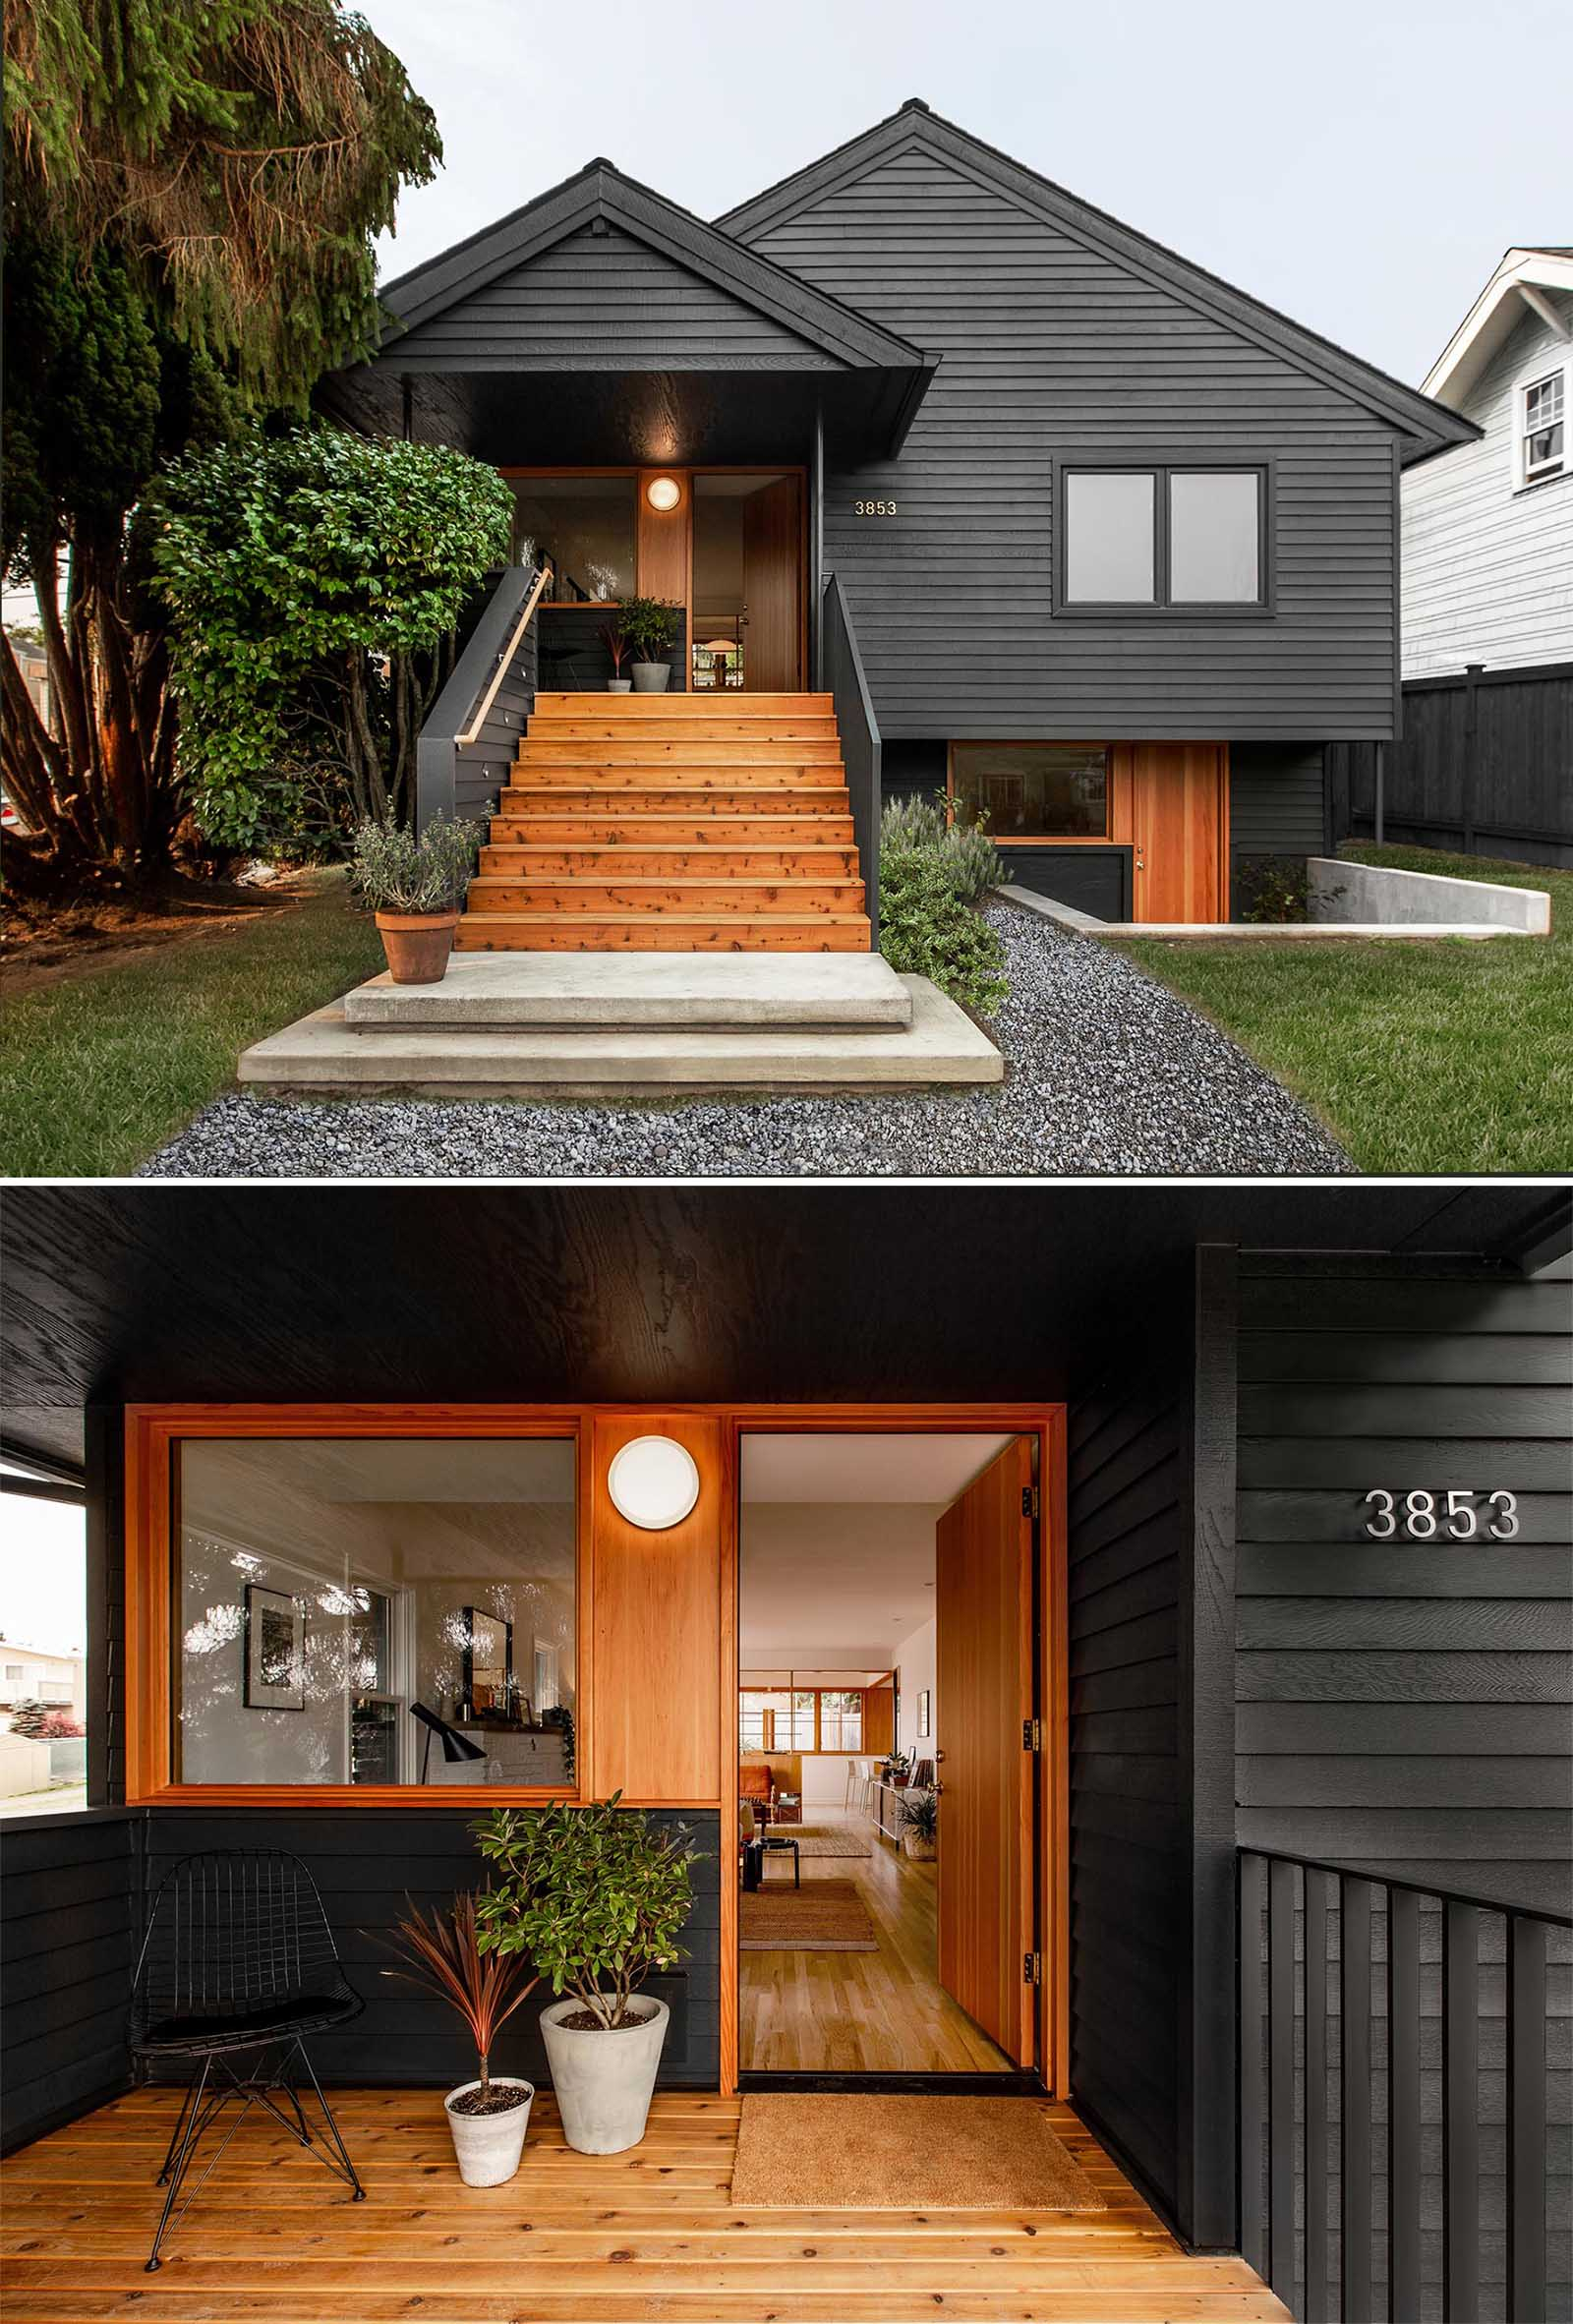 A remodeled 1920s bungalow received an updated black exterior, wider wood stairs that lead up to the front porch, as well as a secondary lower entrance that can be used to access a home office, guest quarters, or secondary living unit.